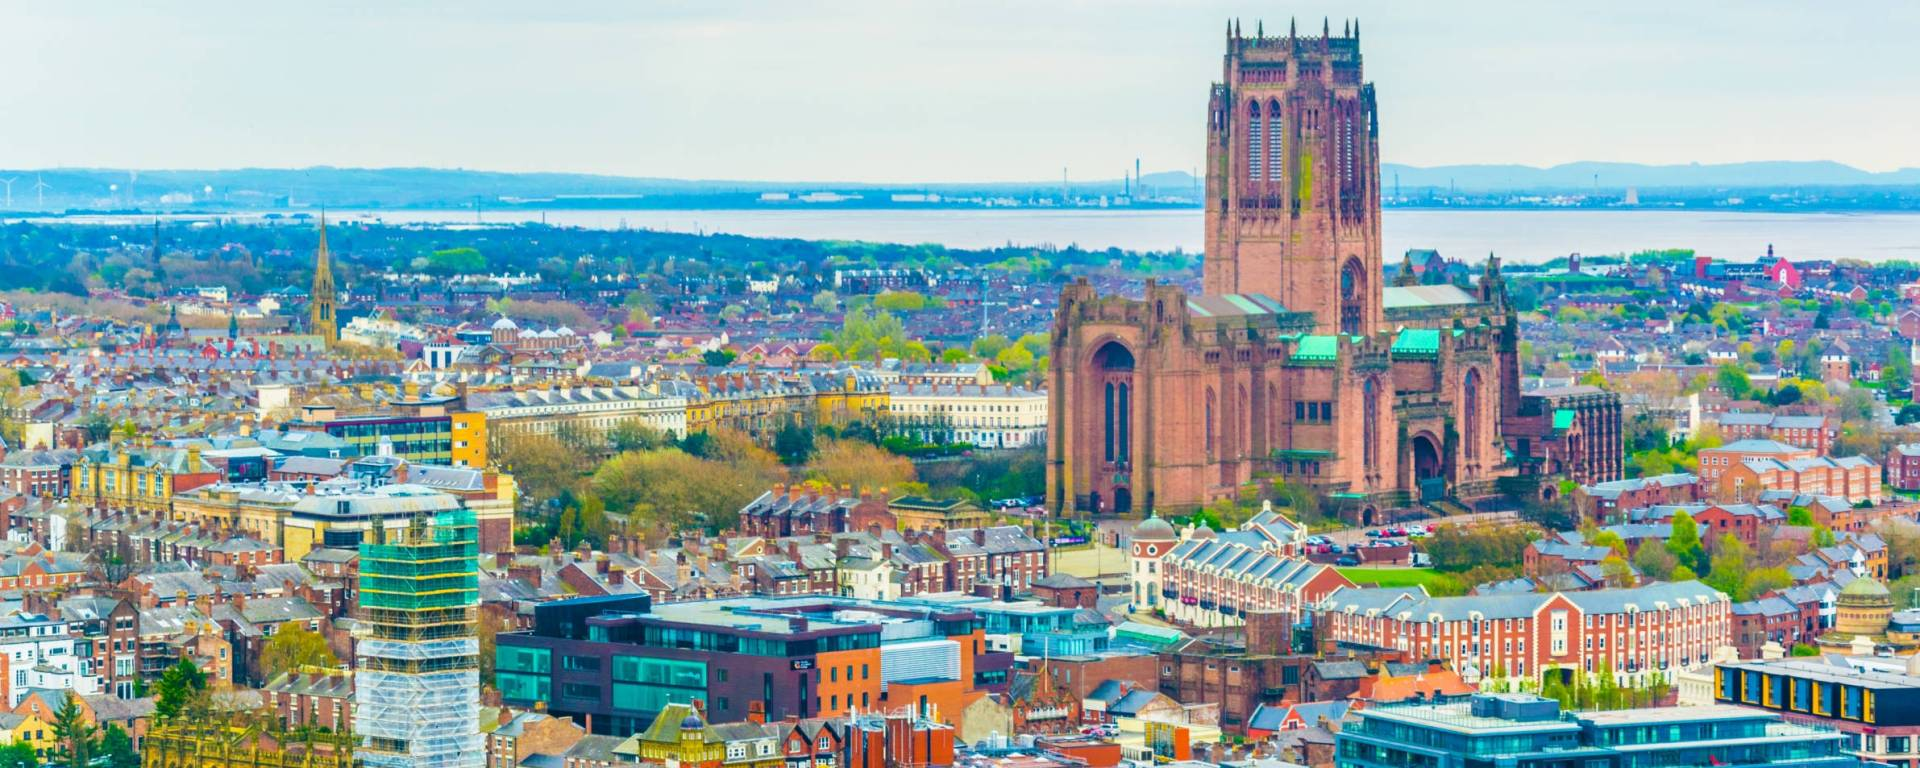 safety measures you can expect at these three Liverpool universities